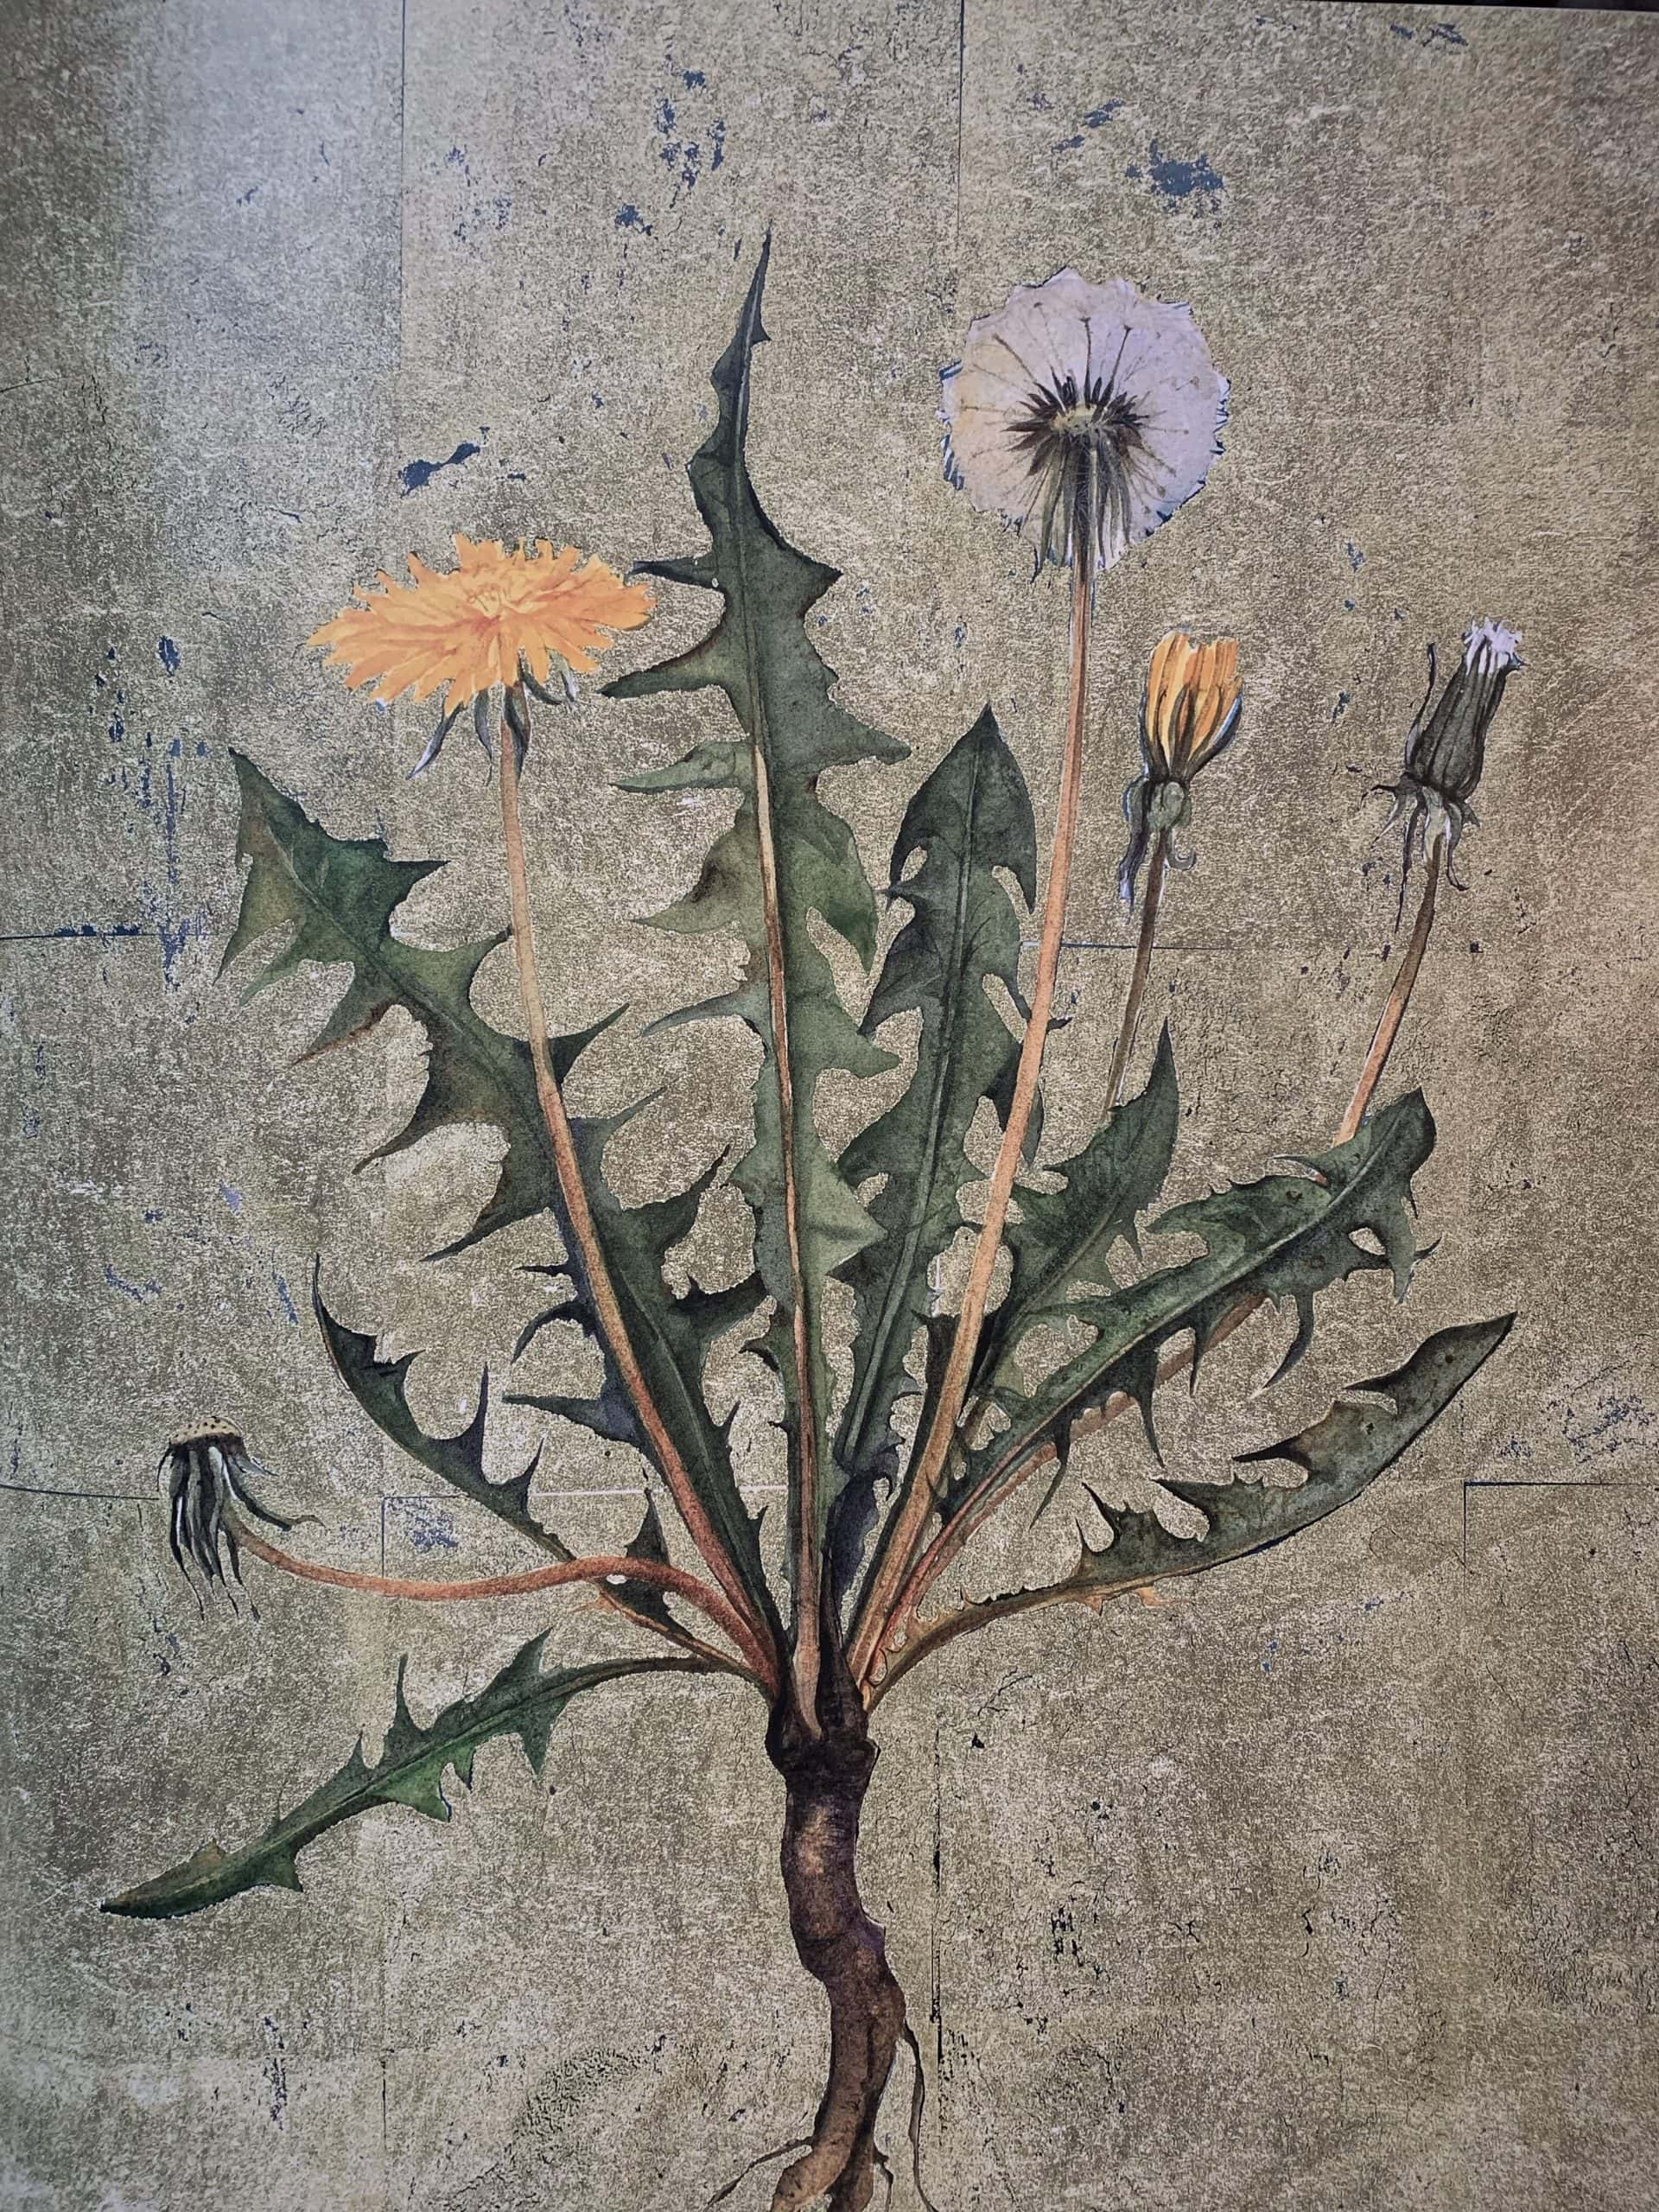 """Dandelion. Illustration by Jackie Morris in """"The Lost Words"""" in the Examined Life Library."""